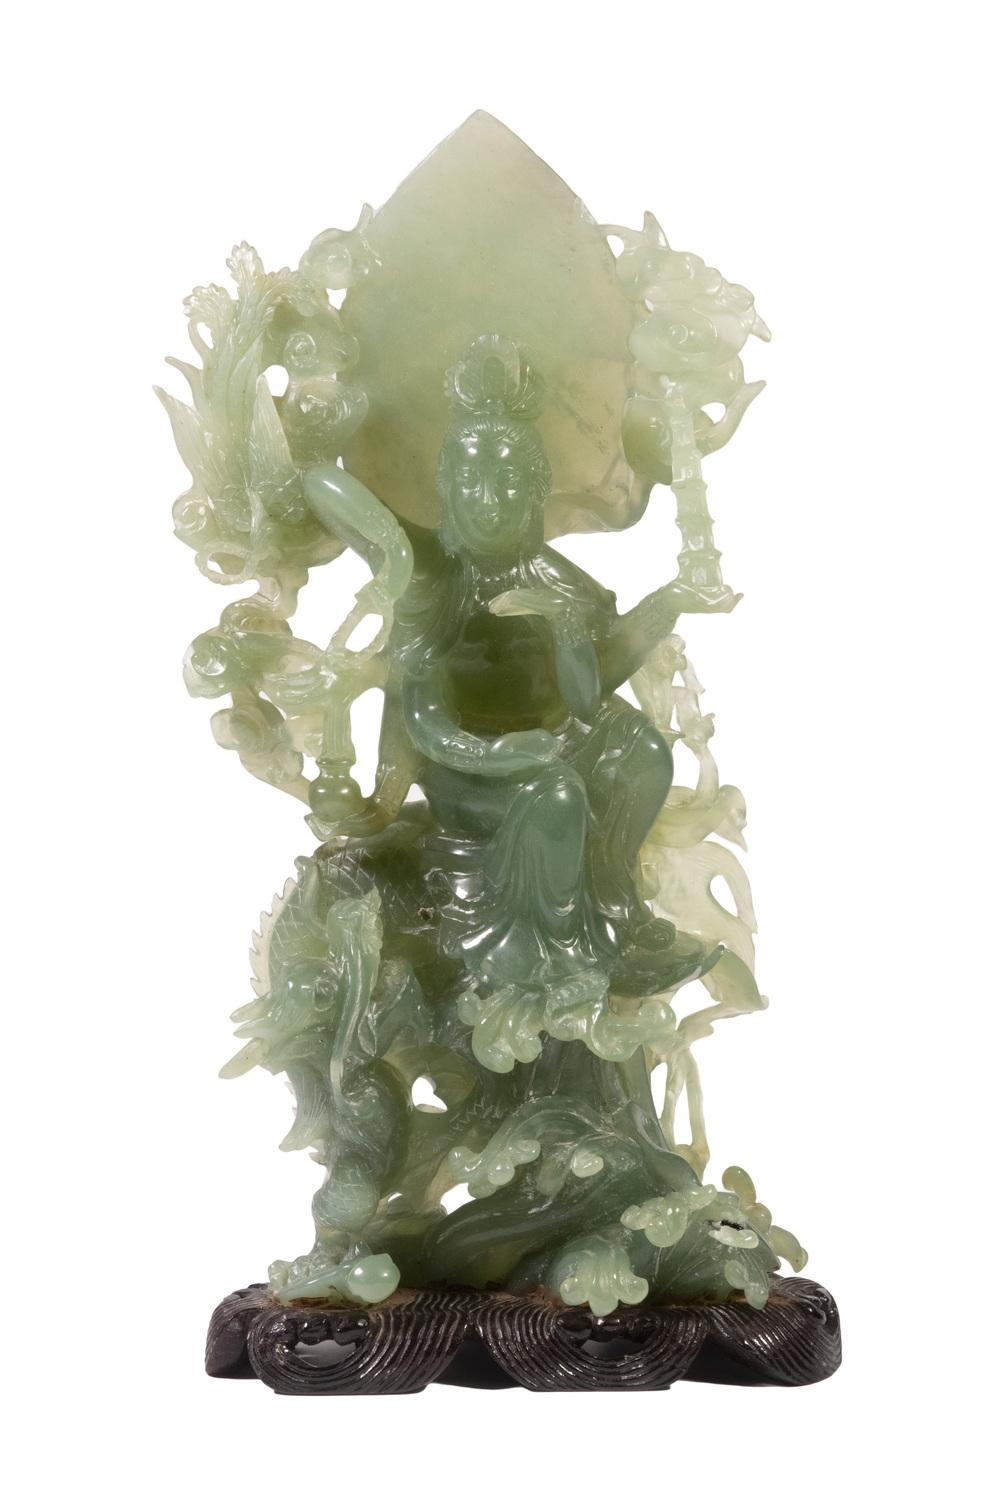 LARGE CHINESE JADE FIGURE OF A FEMALE DEITY SEATED ON A DRAGON, 20TH C.